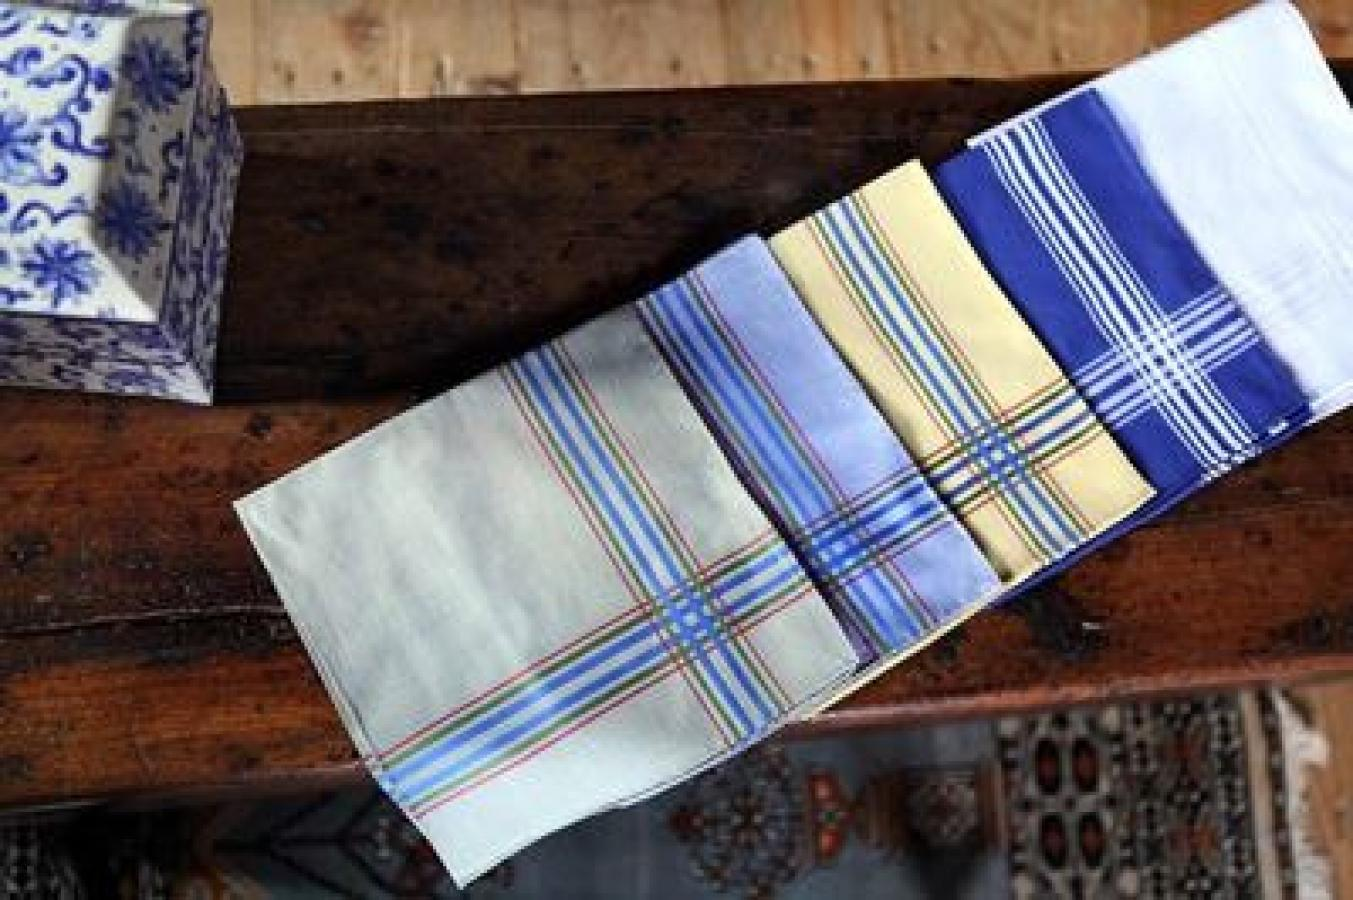 SIMONNOT-GODARD - The last French creators of cambric handkerchiefs and luxury linen